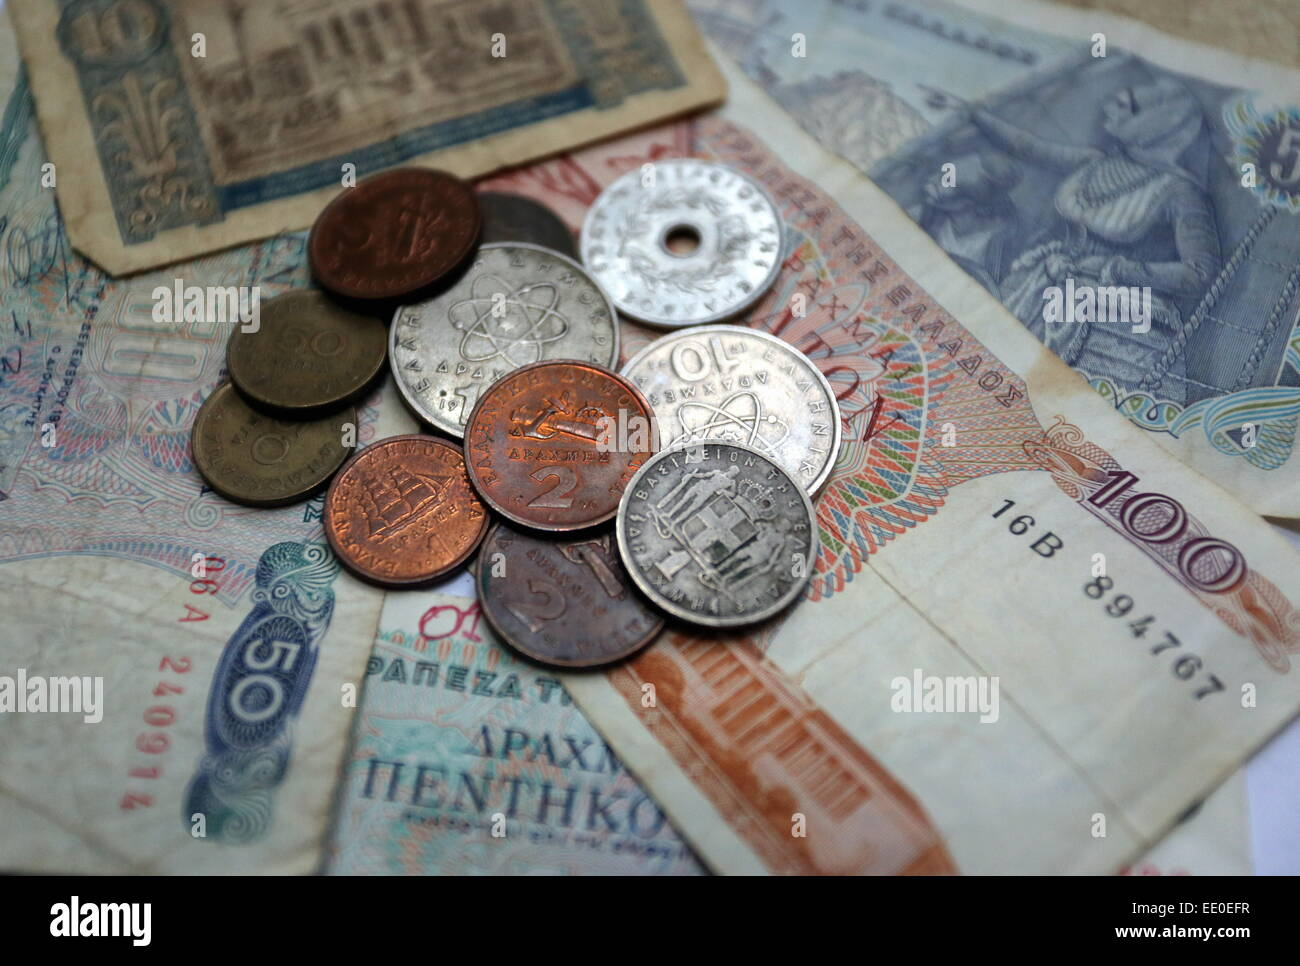 Image result for coins and paper notes as money